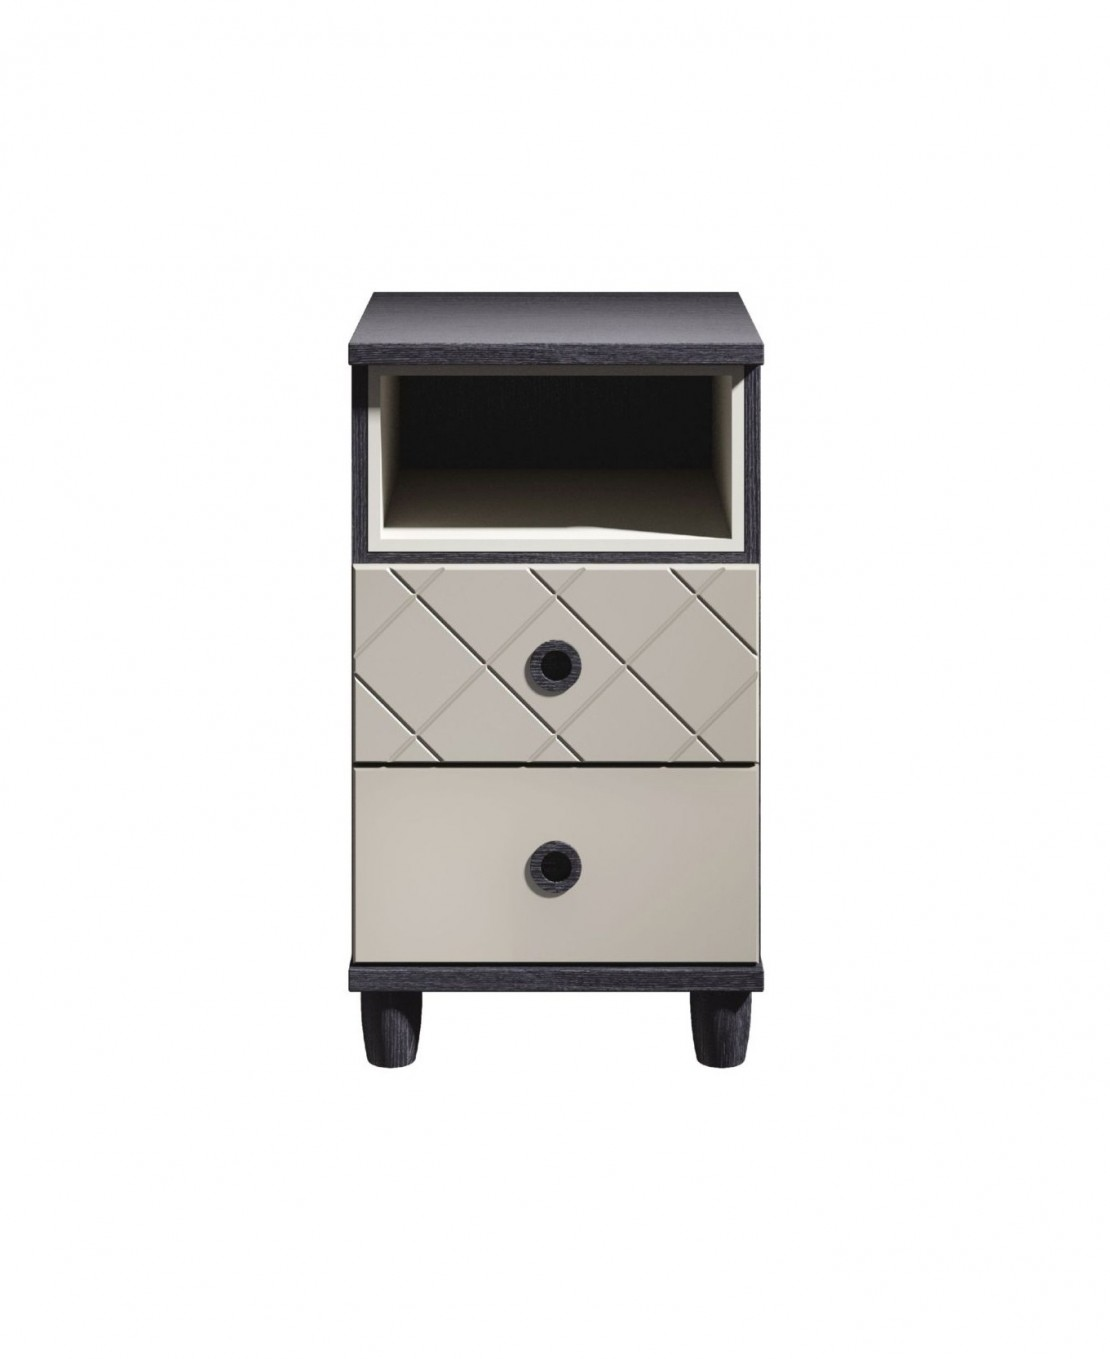 /_images/product-photos/kt-furniture-geo-2-drawer-pod-chest-matt-grey-with-black-oak-carcase-a.jpg